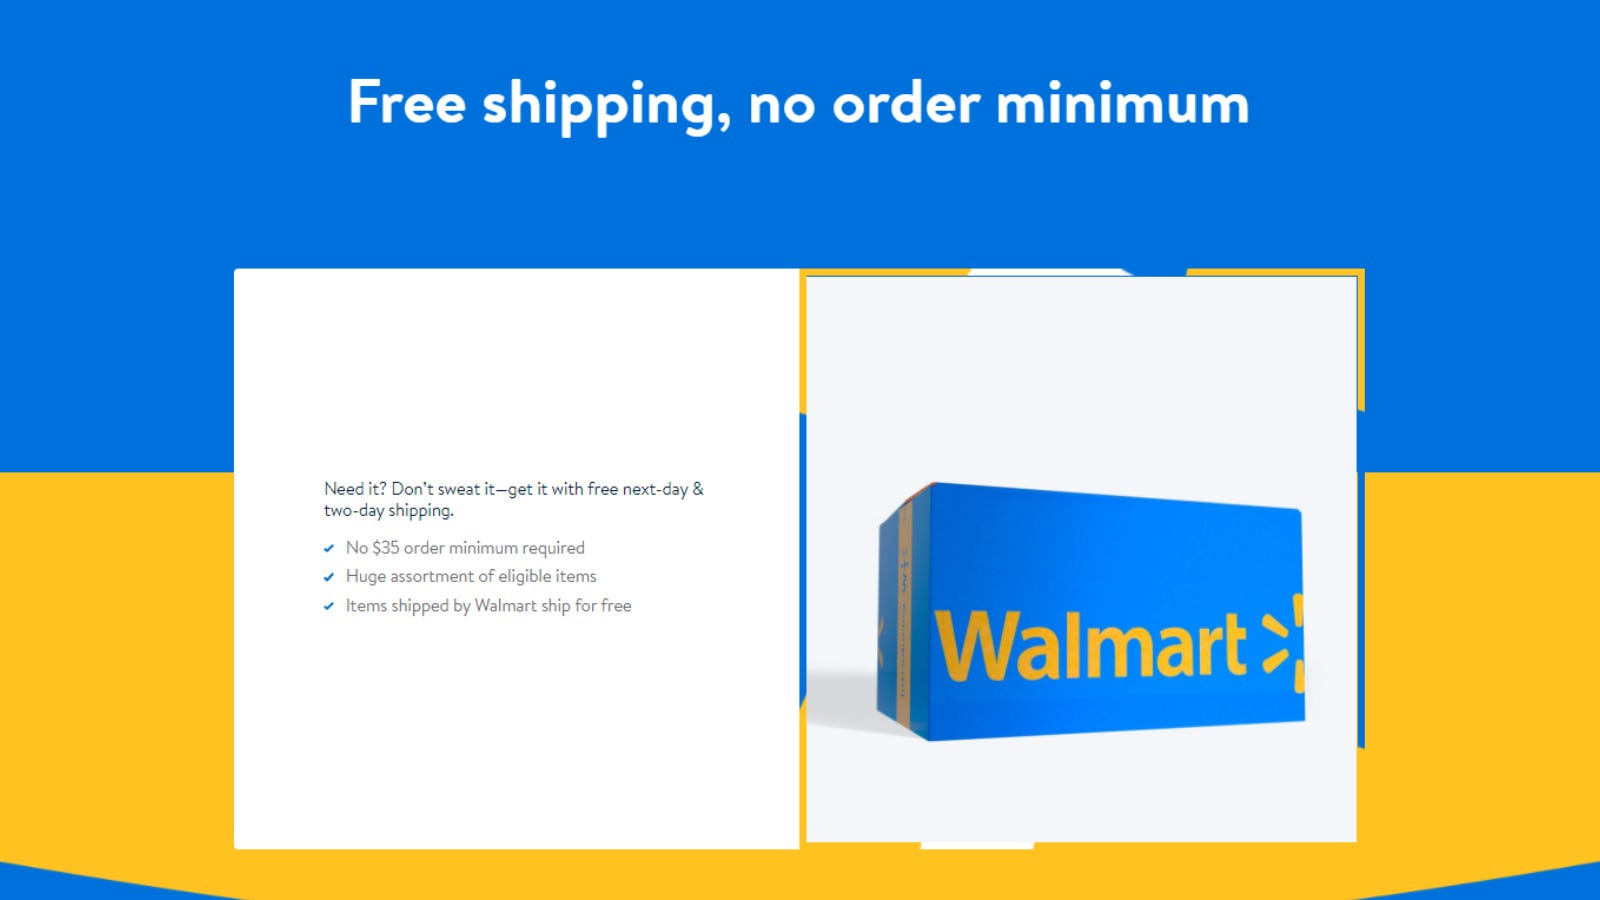 Walmart+ page on free shipping